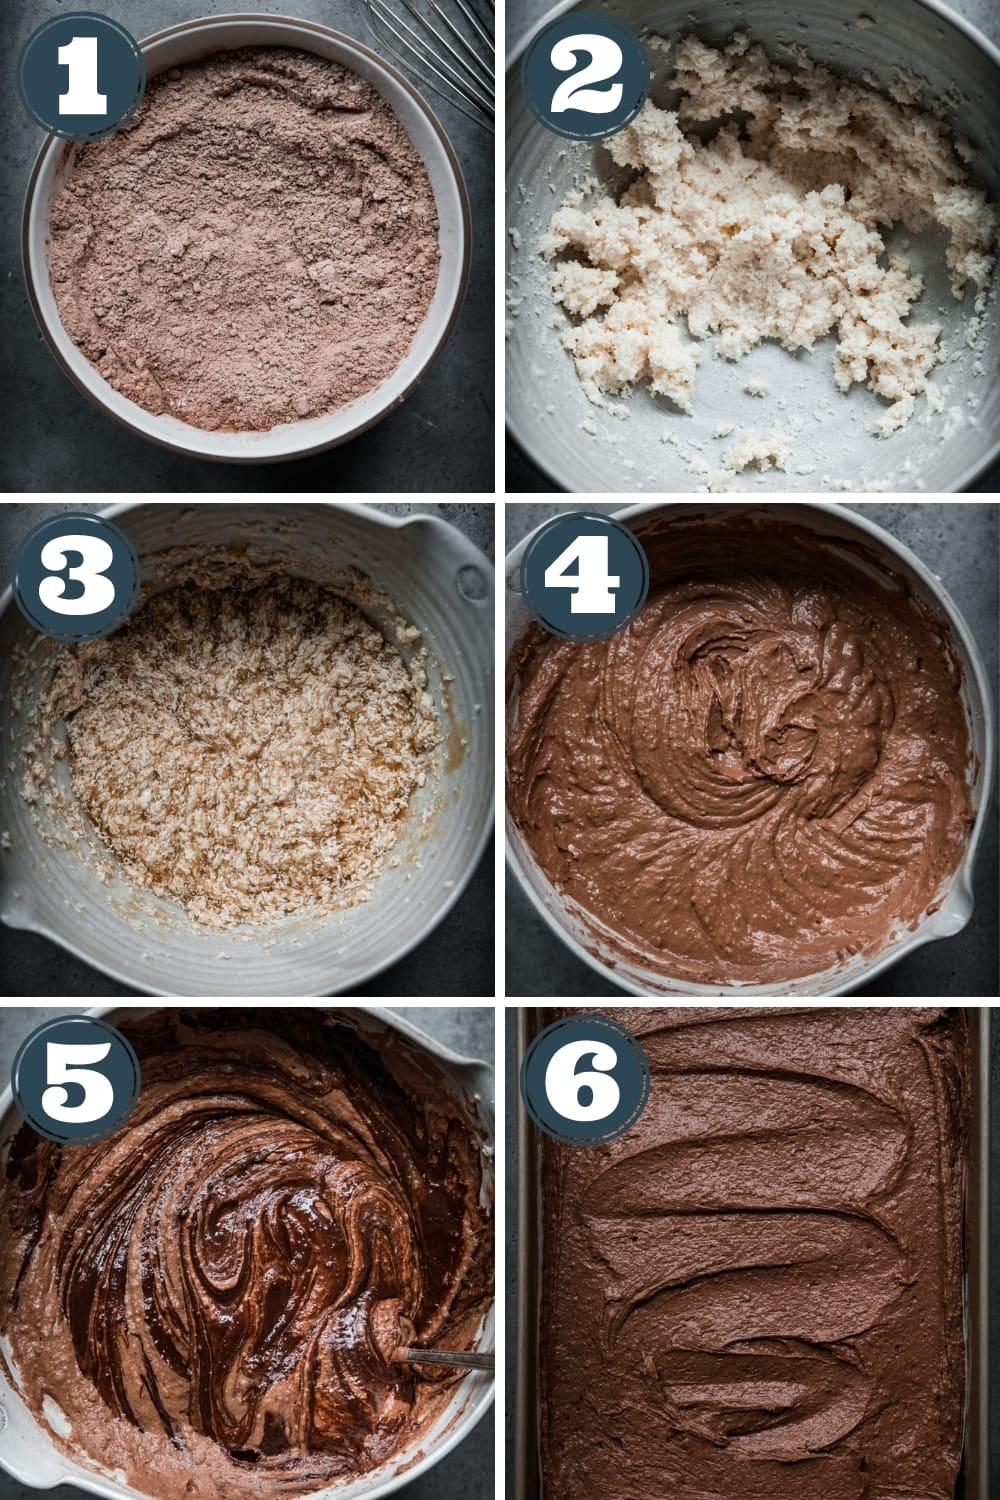 step-by-step photos for how to make vegan chocolate cake batter using an electric mixer.